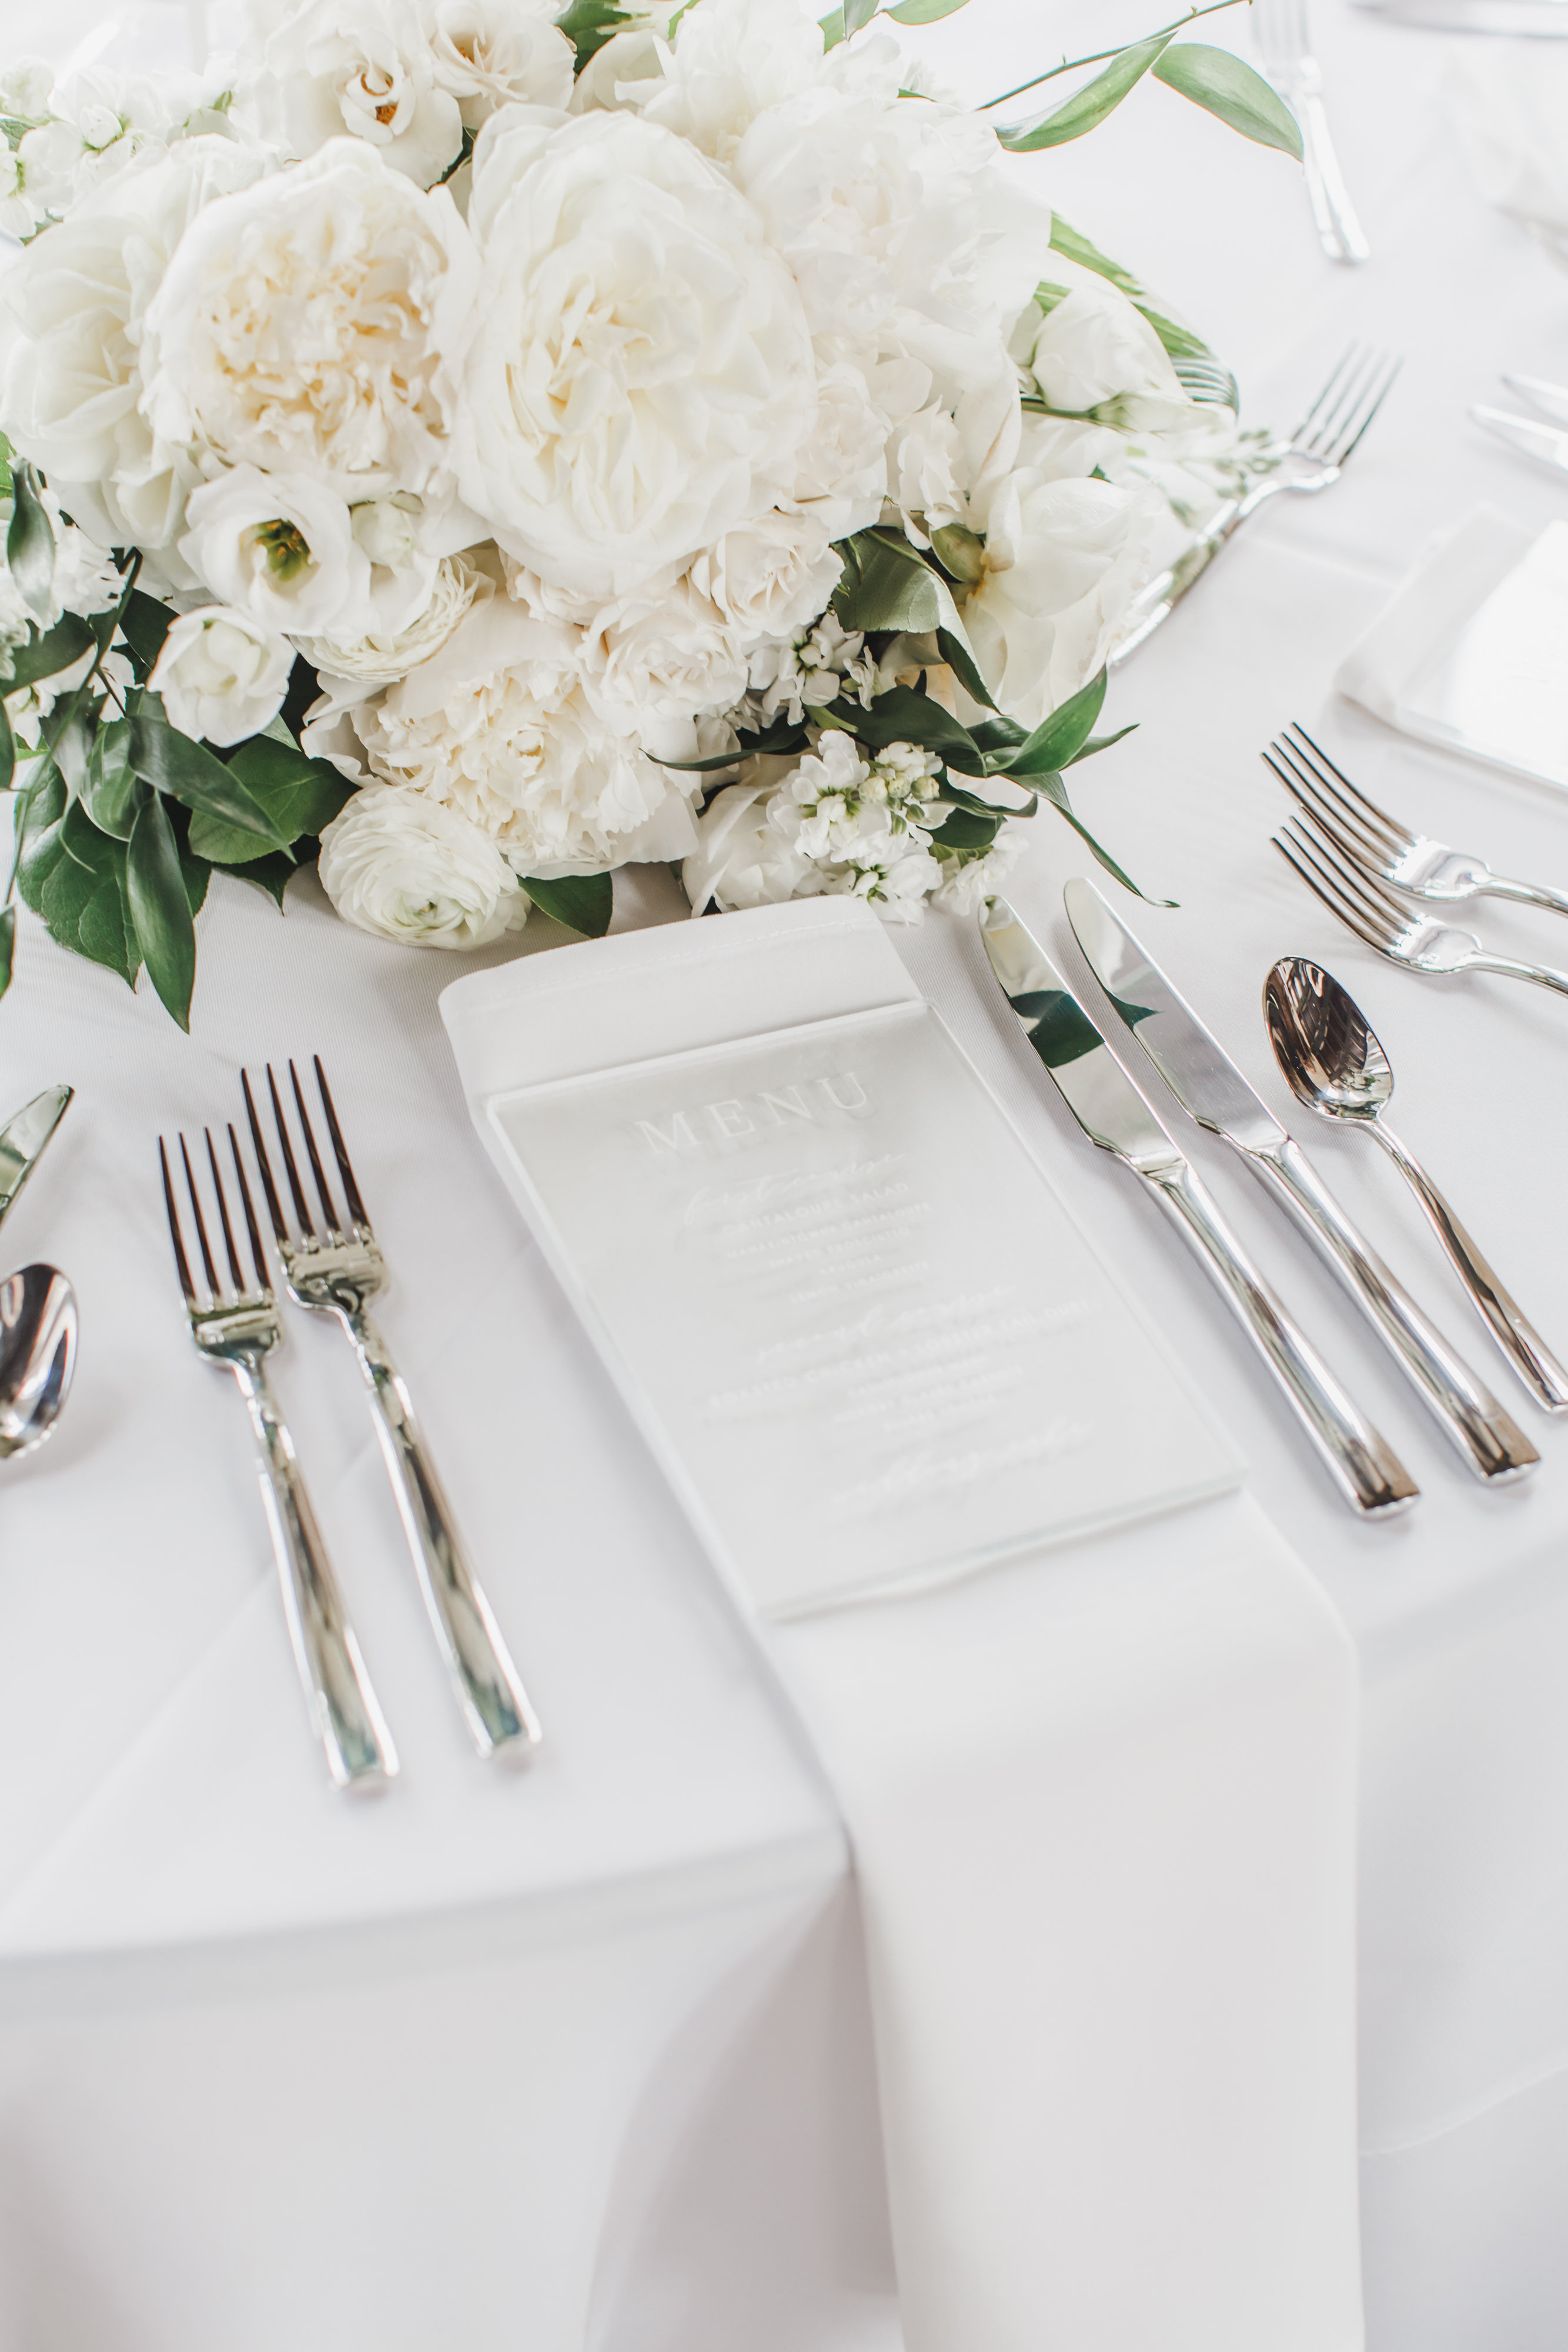 Elegant Reception Place Setting